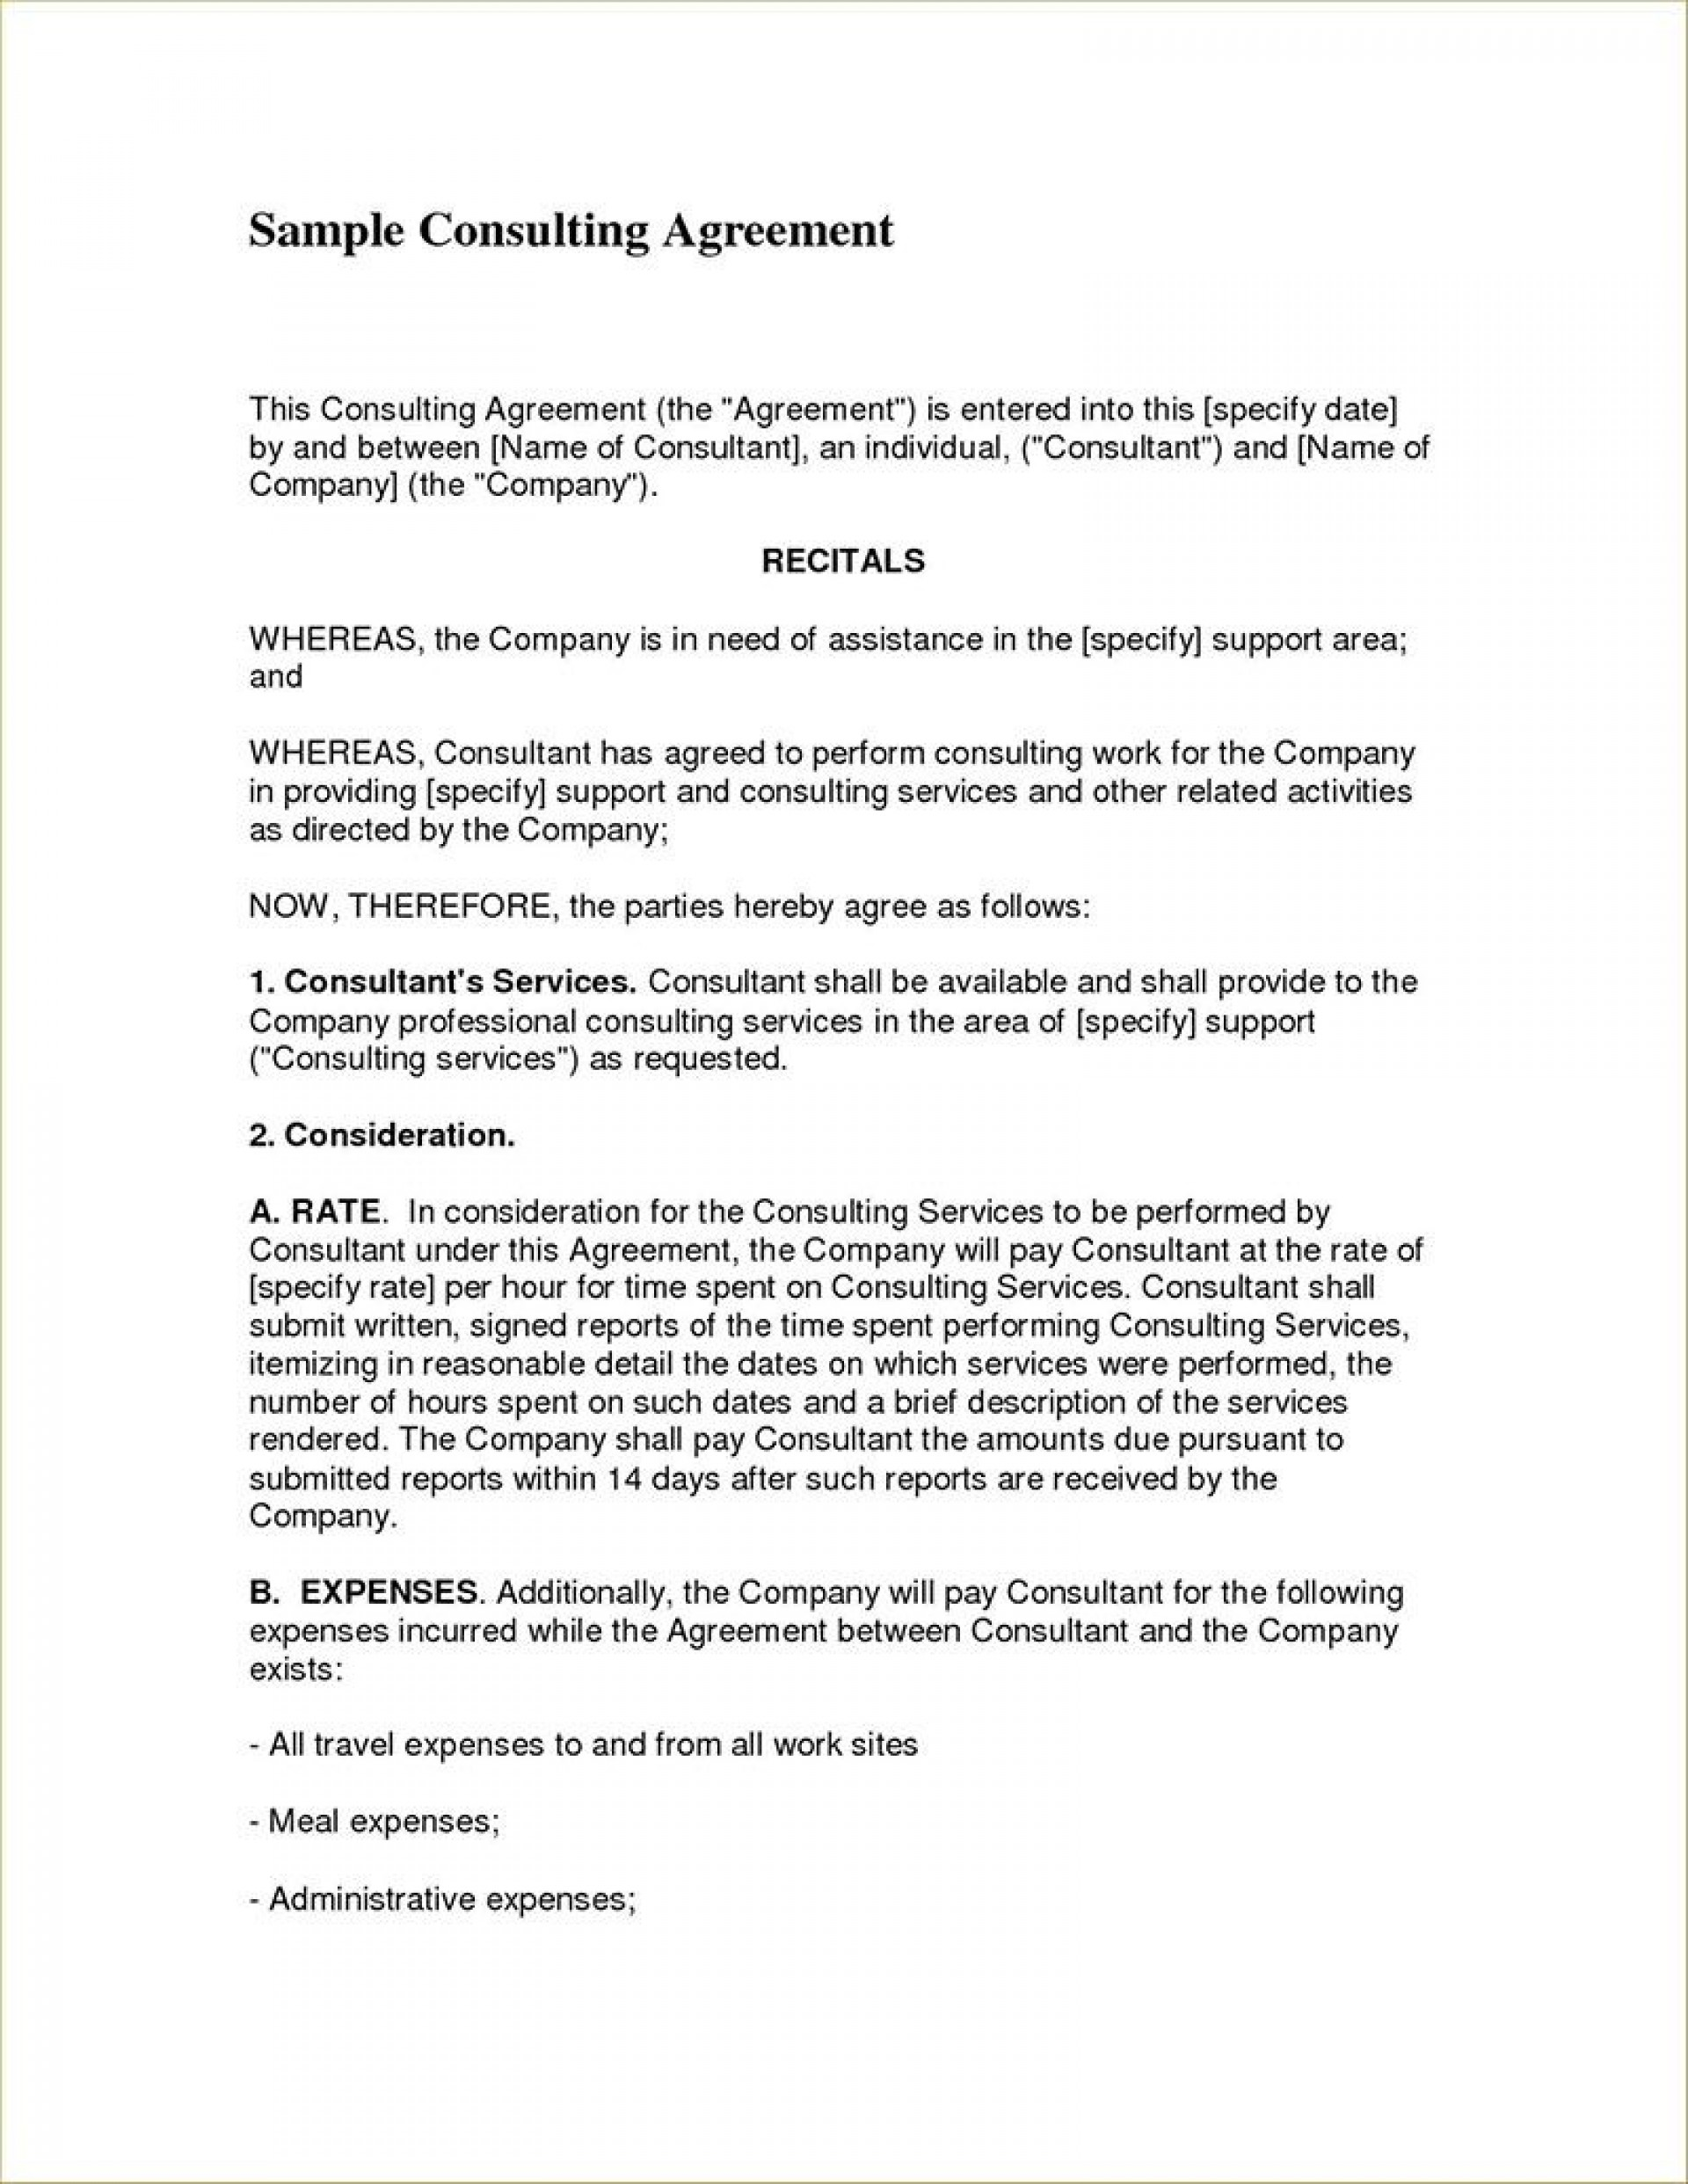 007 Dreaded Free Consulting Agreement Template Image  Word South Africa Uk1920